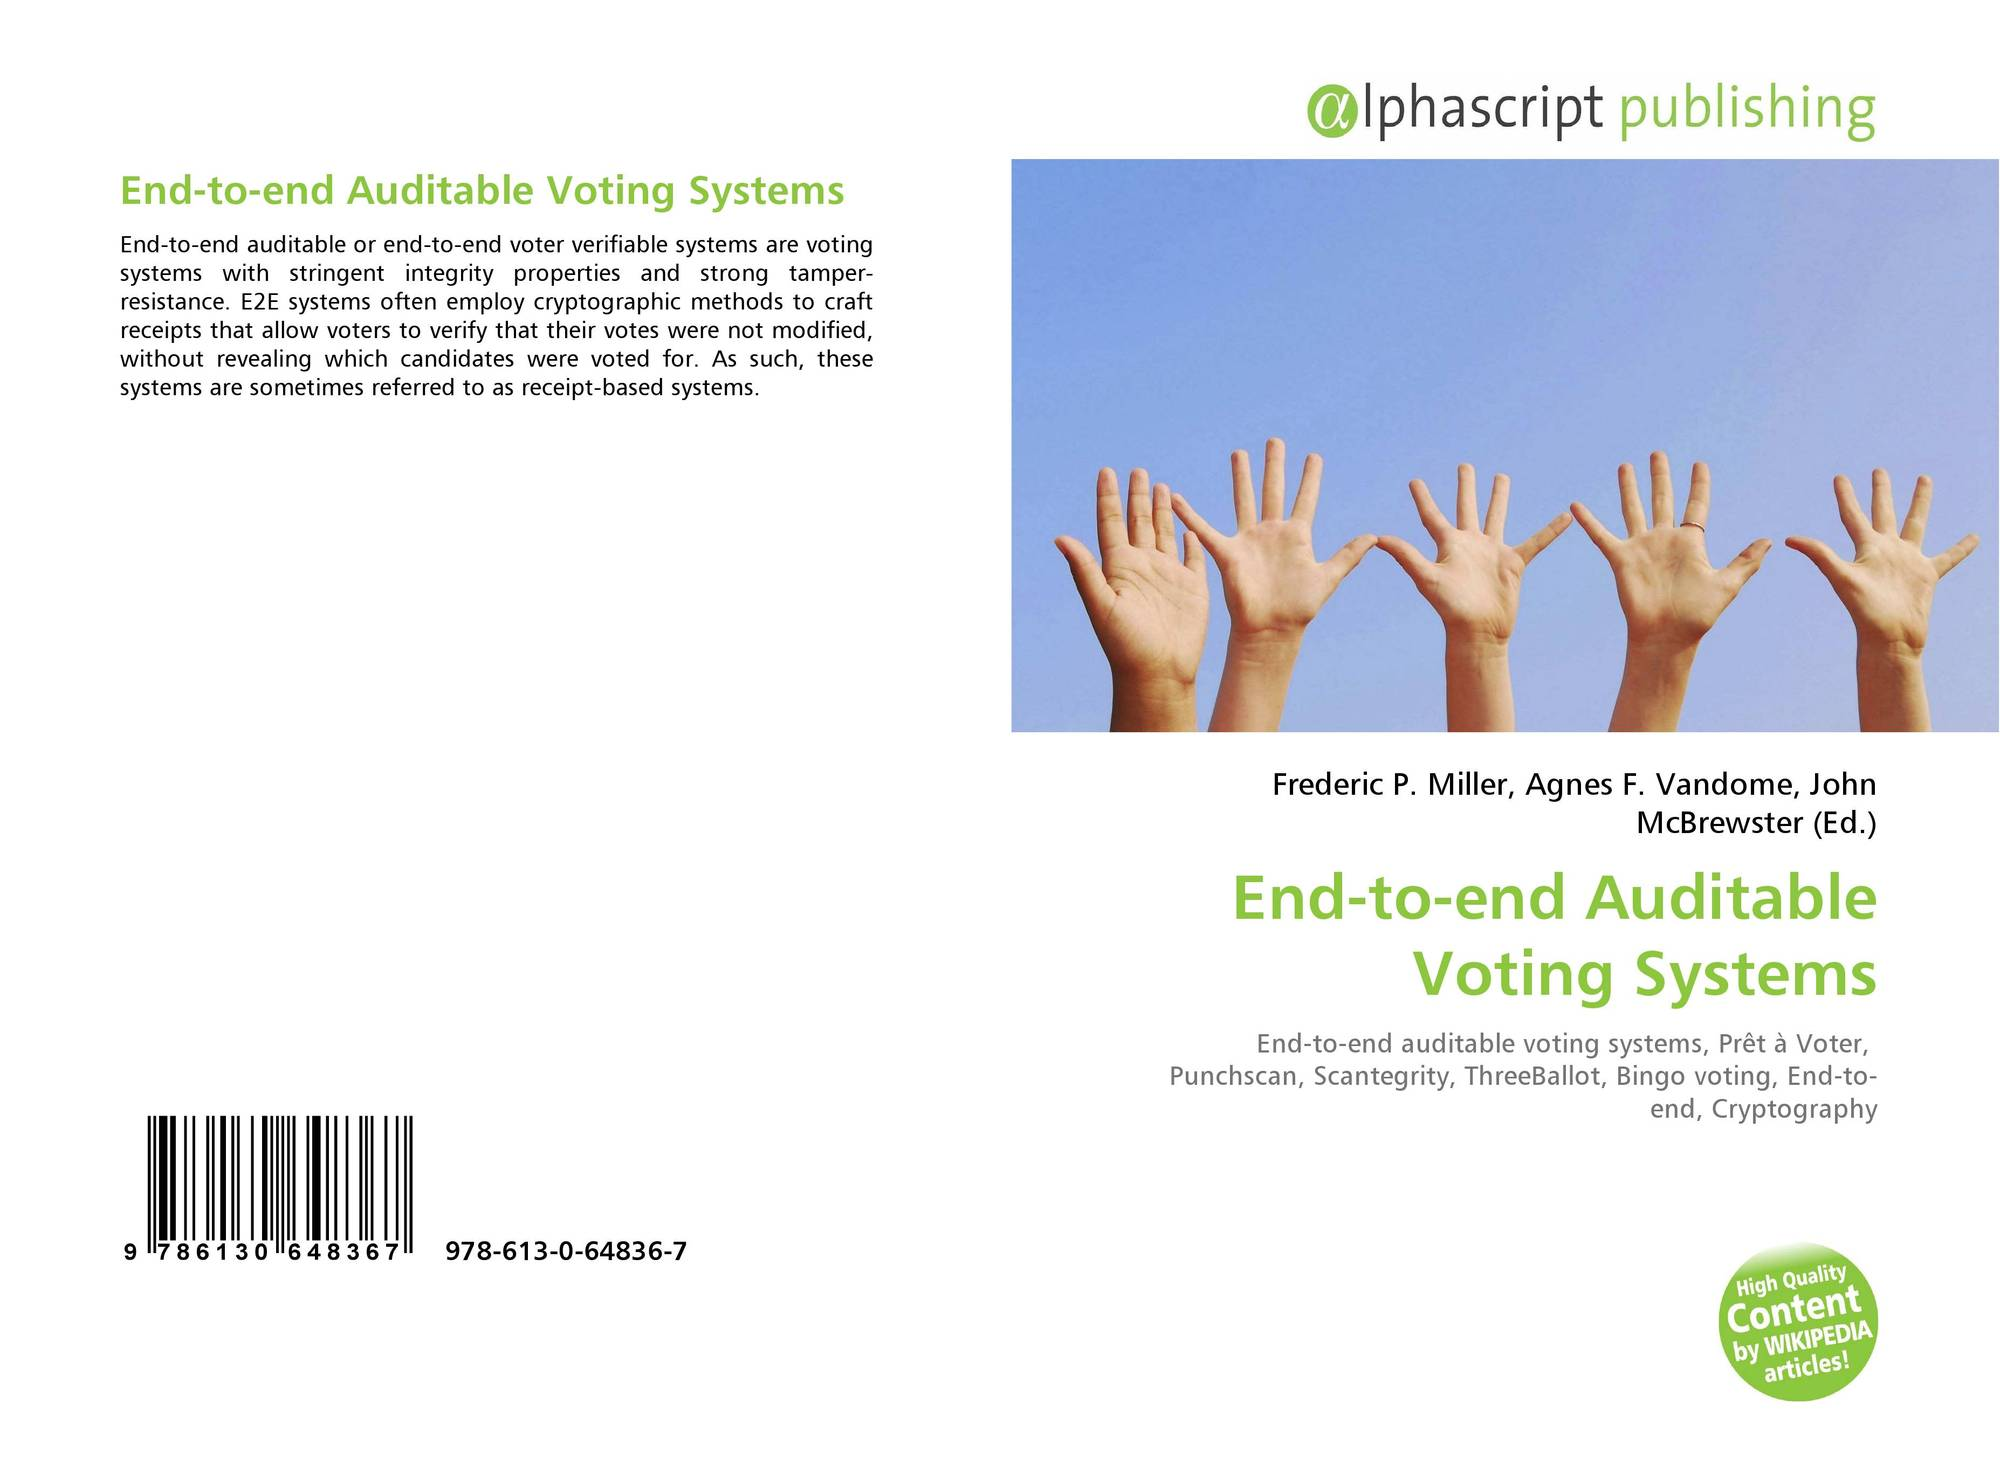 End-to-end auditable voting systems